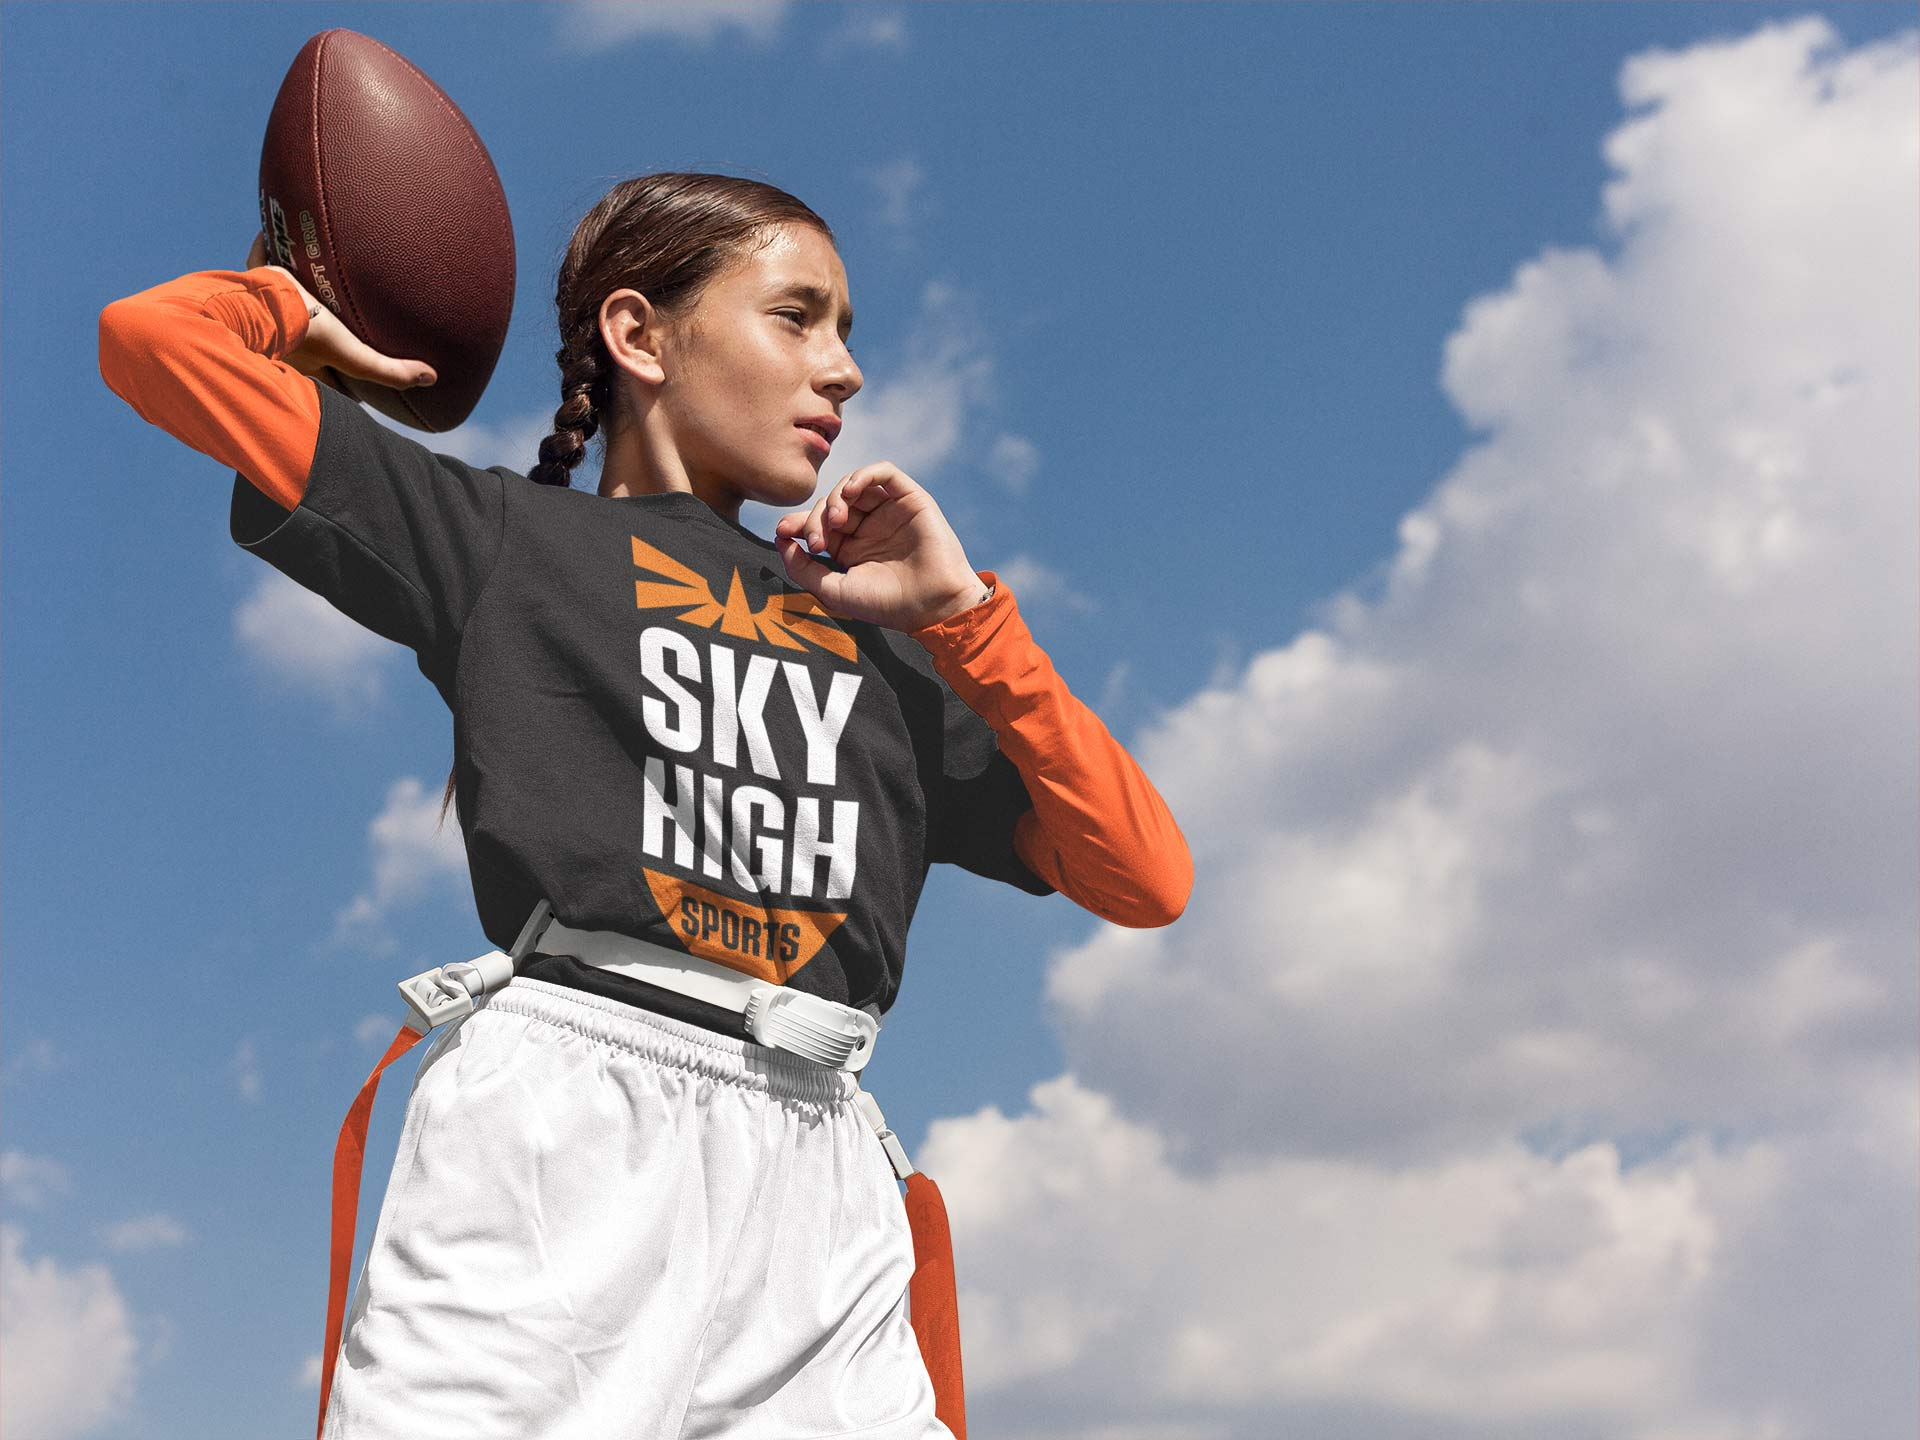 Sky High Sports Logo Design on a T-shirt